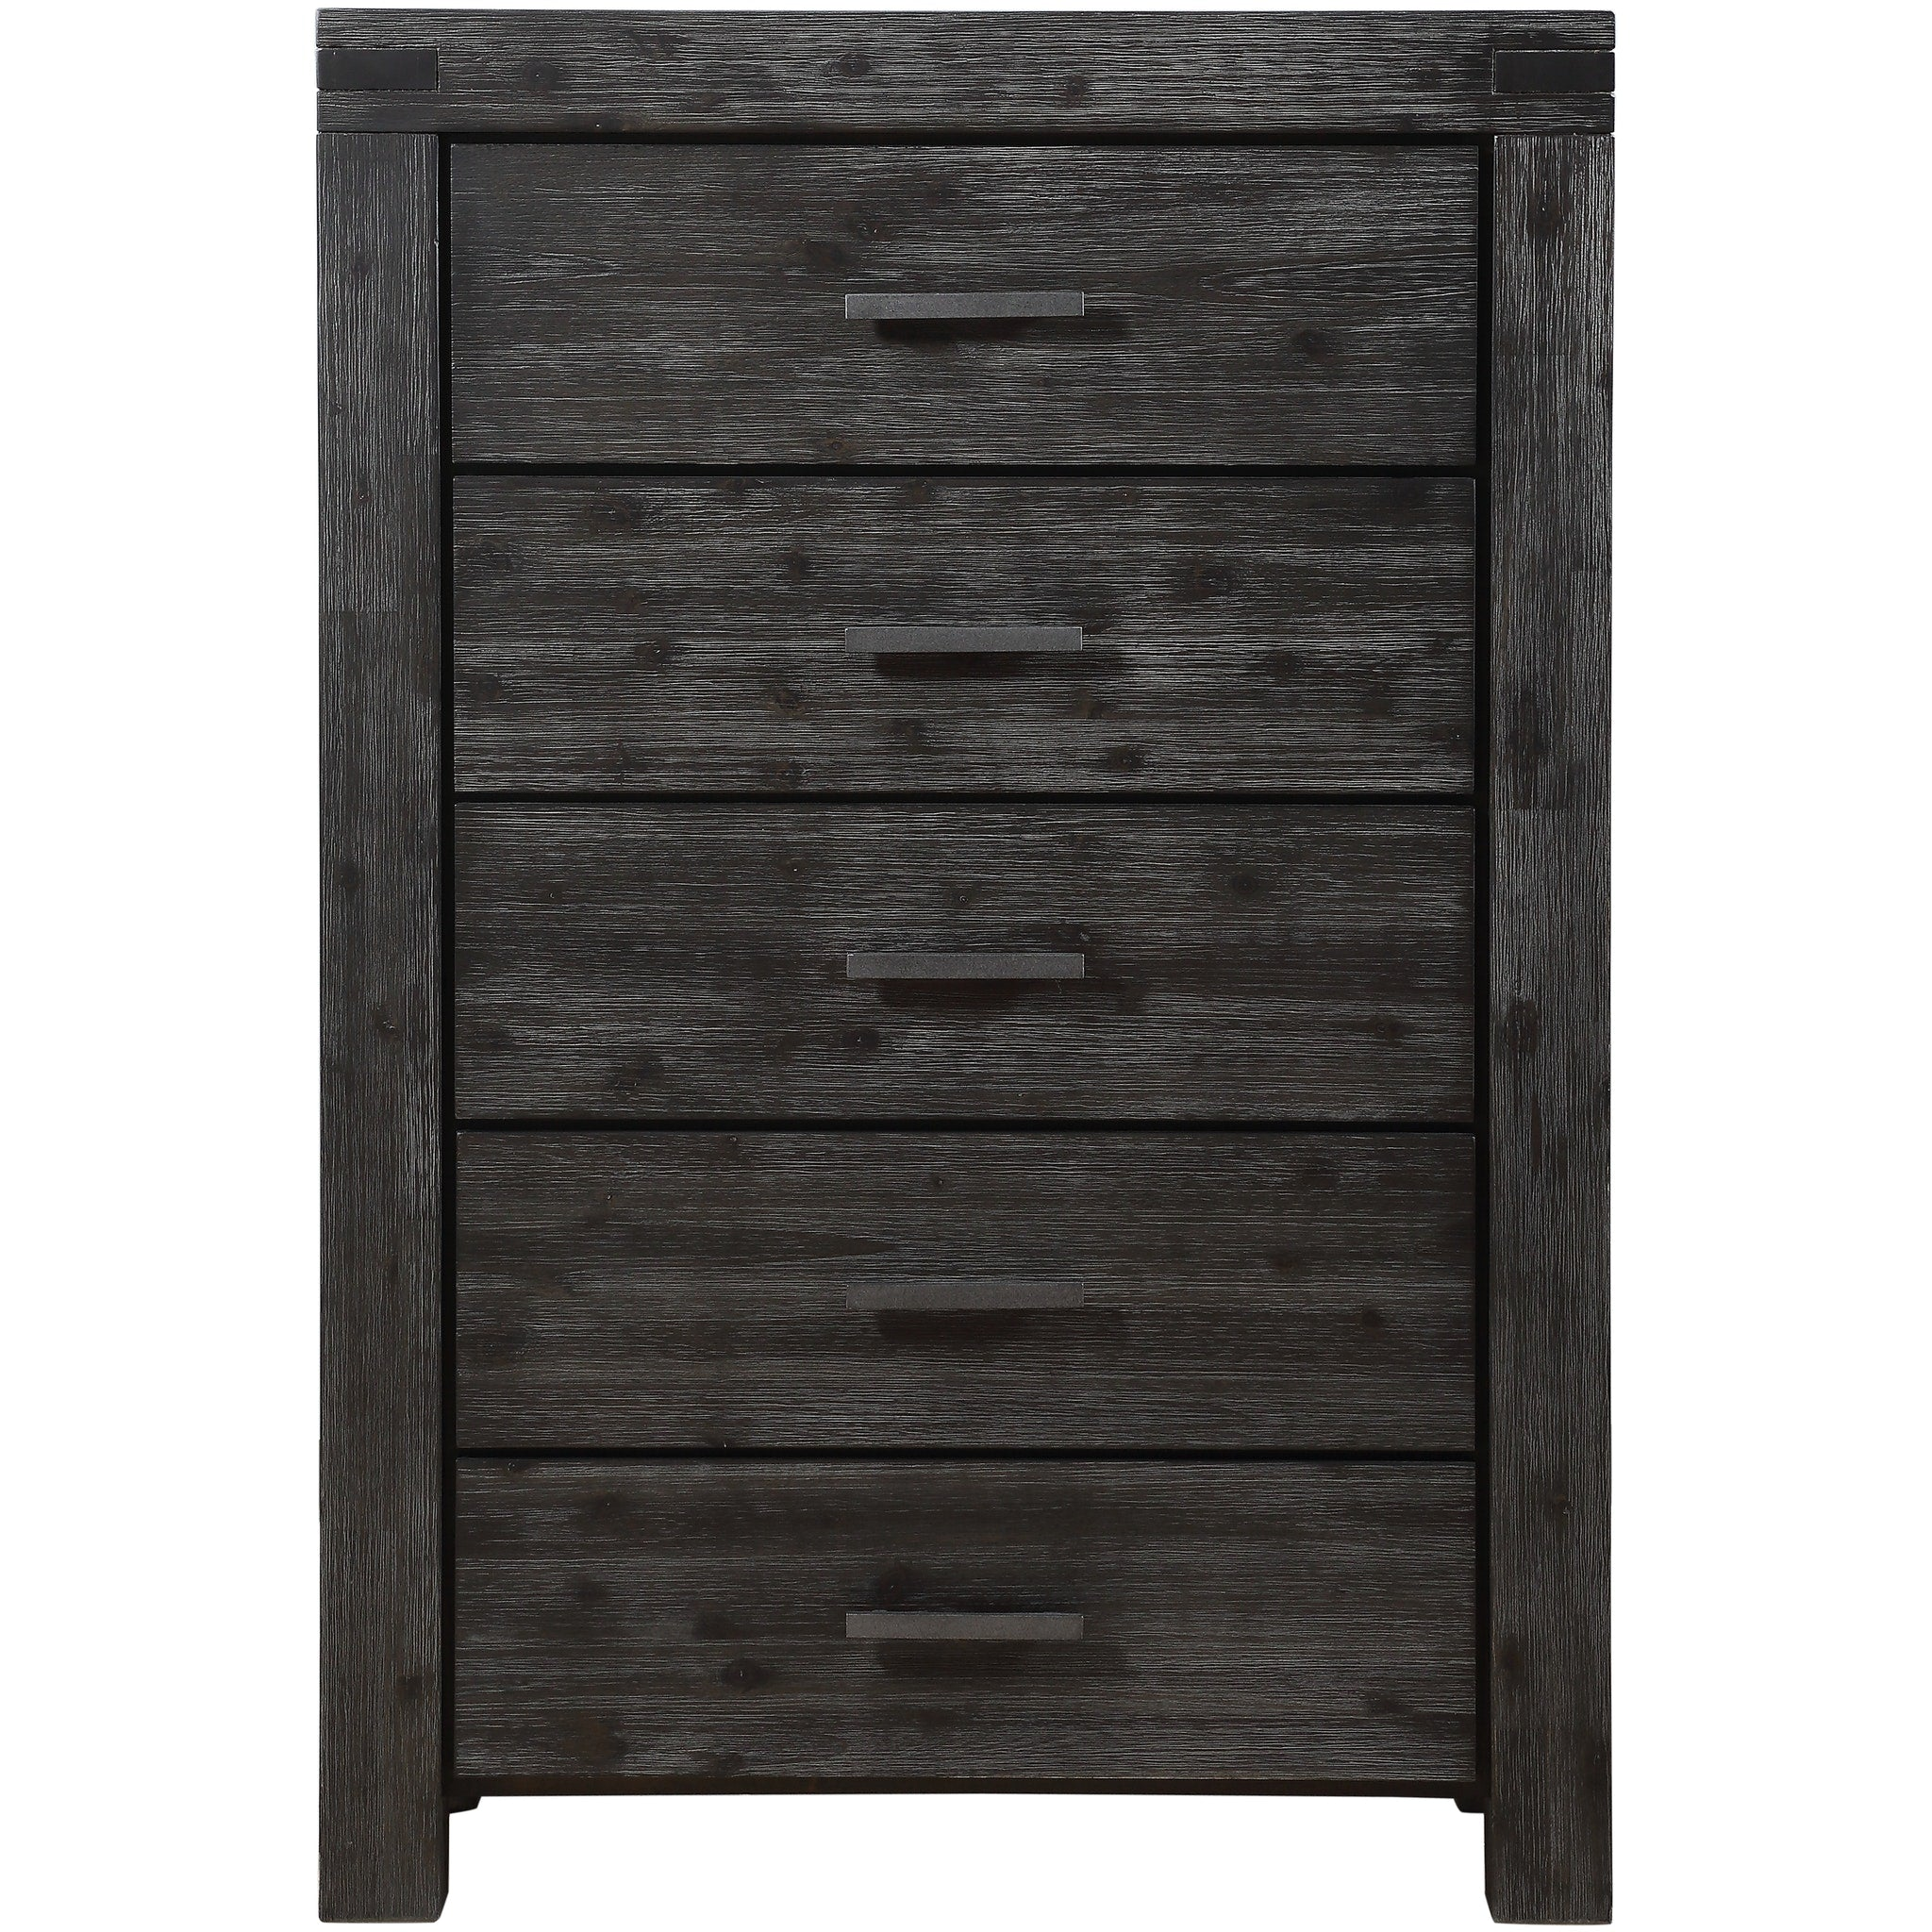 Meadow Five Drawer Solid Wood Chest in Graphite